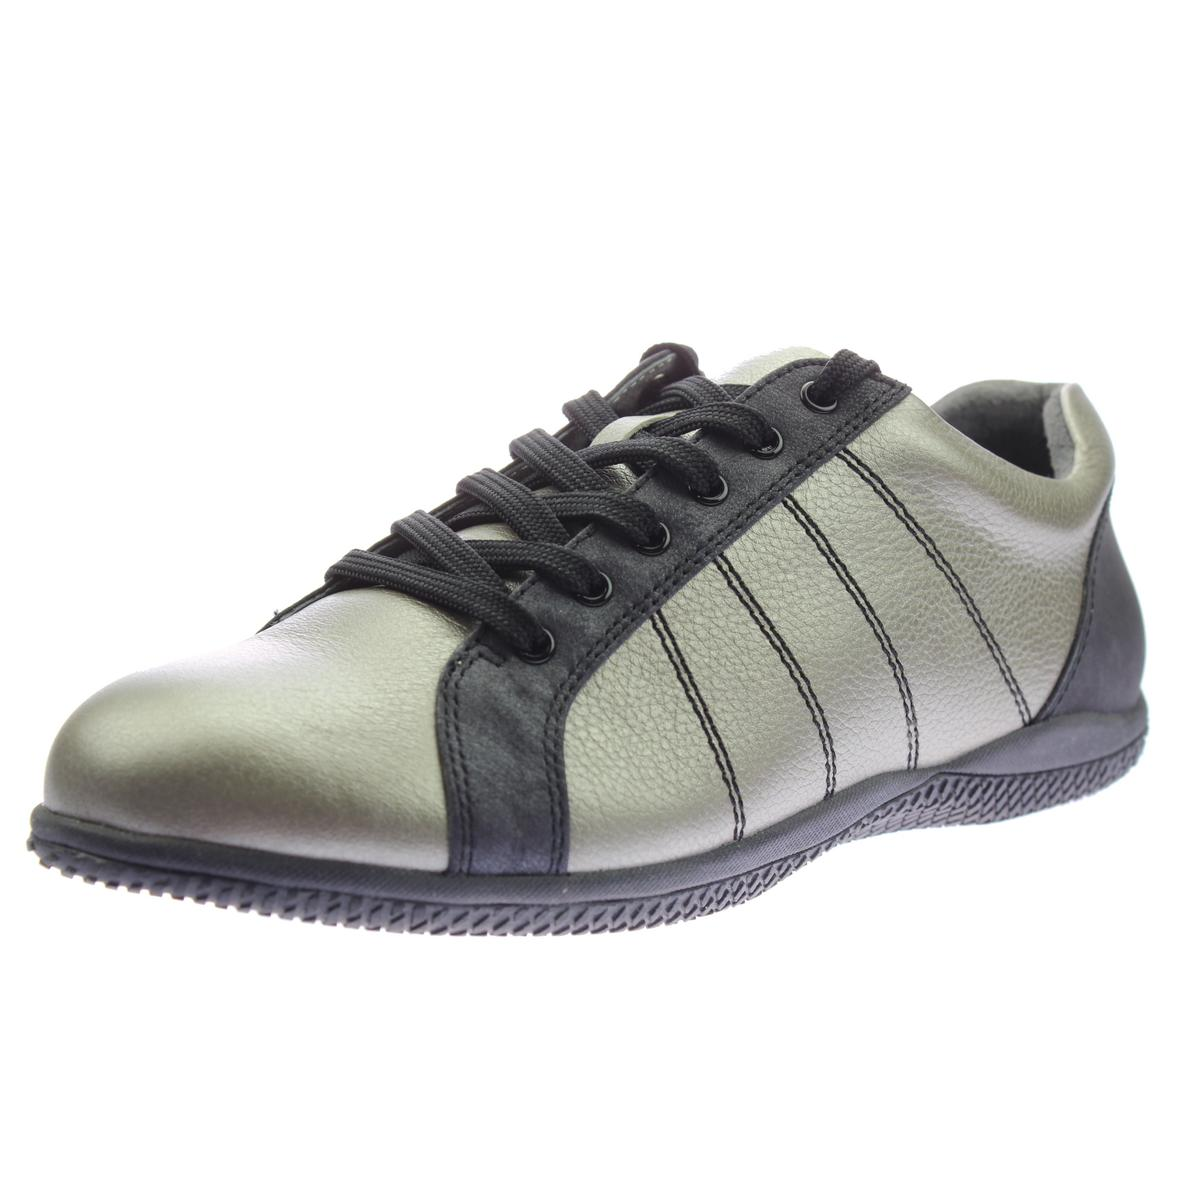 SoftWalk Womens Hickory Leather Casual Athletic Shoes by SoftWalk